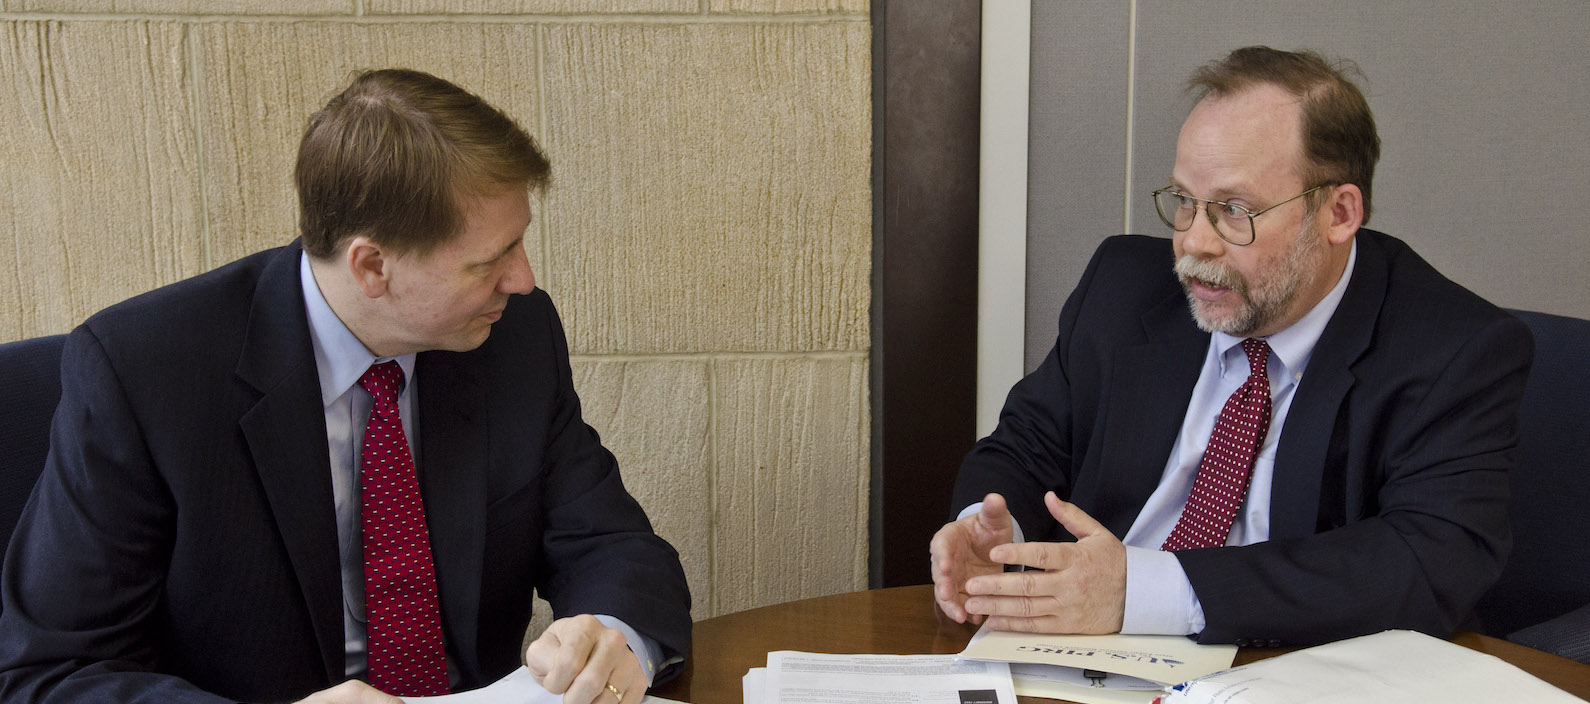 U.S. PIRG federal Consumer Program Director and Senior Fellow Ed Mierzwinski meets with CFPB director Richard Cordray